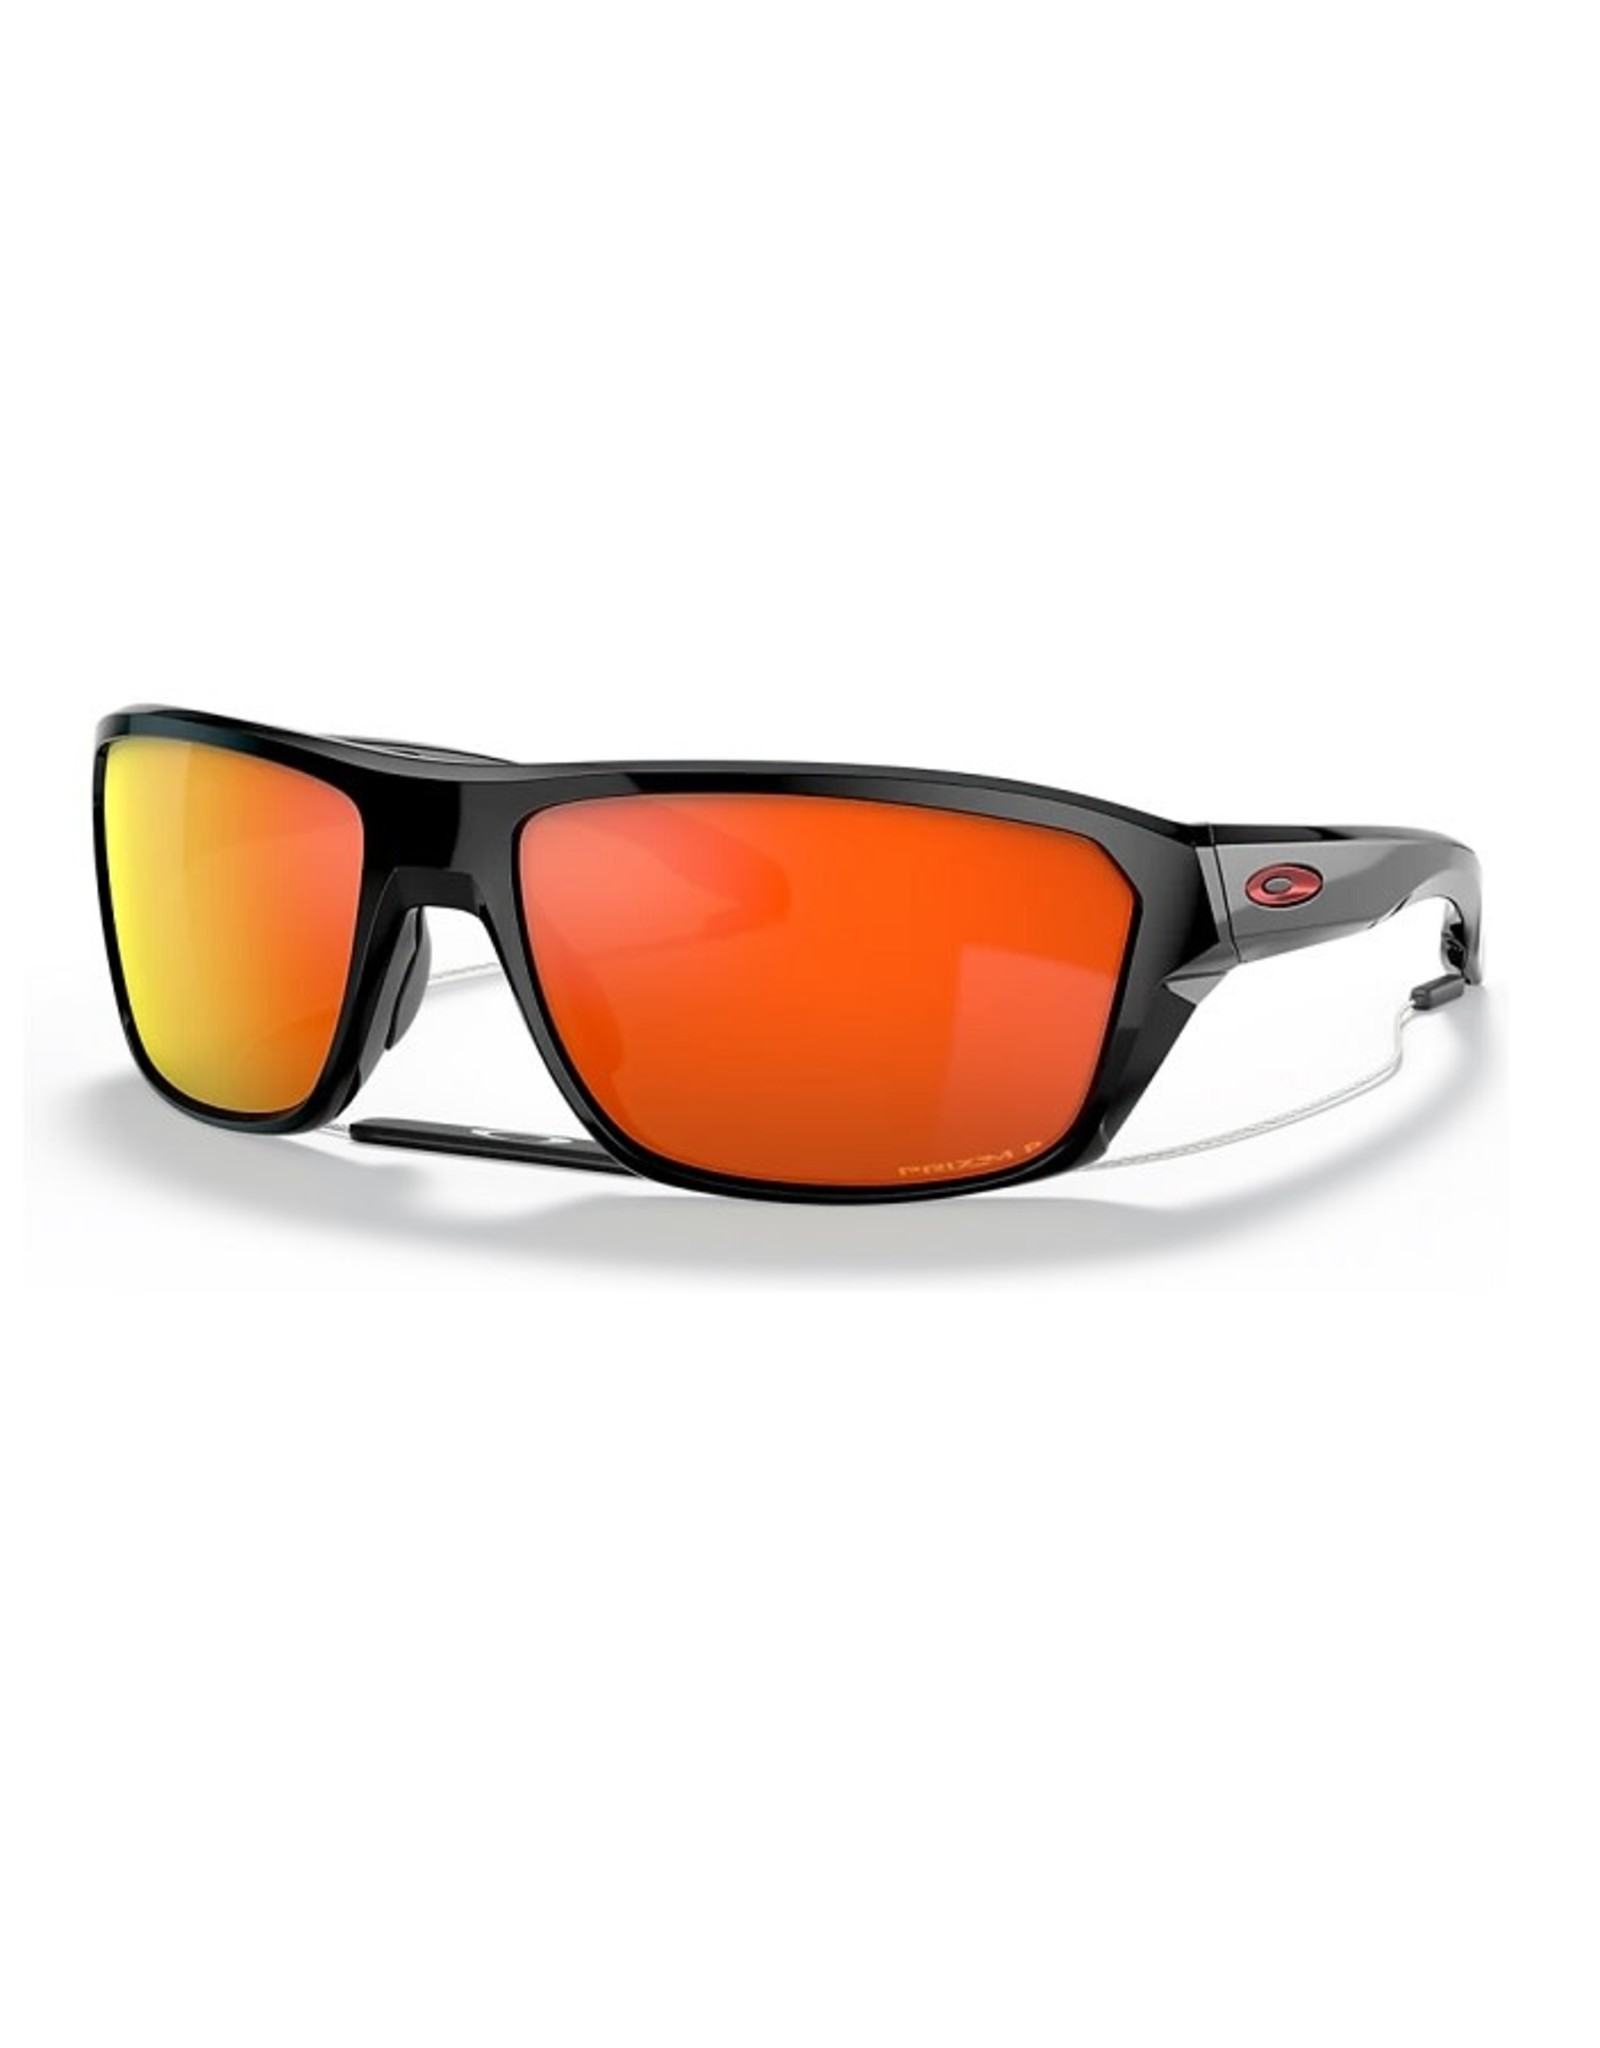 Oakley SPLIT SHOT Polished Black, Prizm Ruby Poalrized